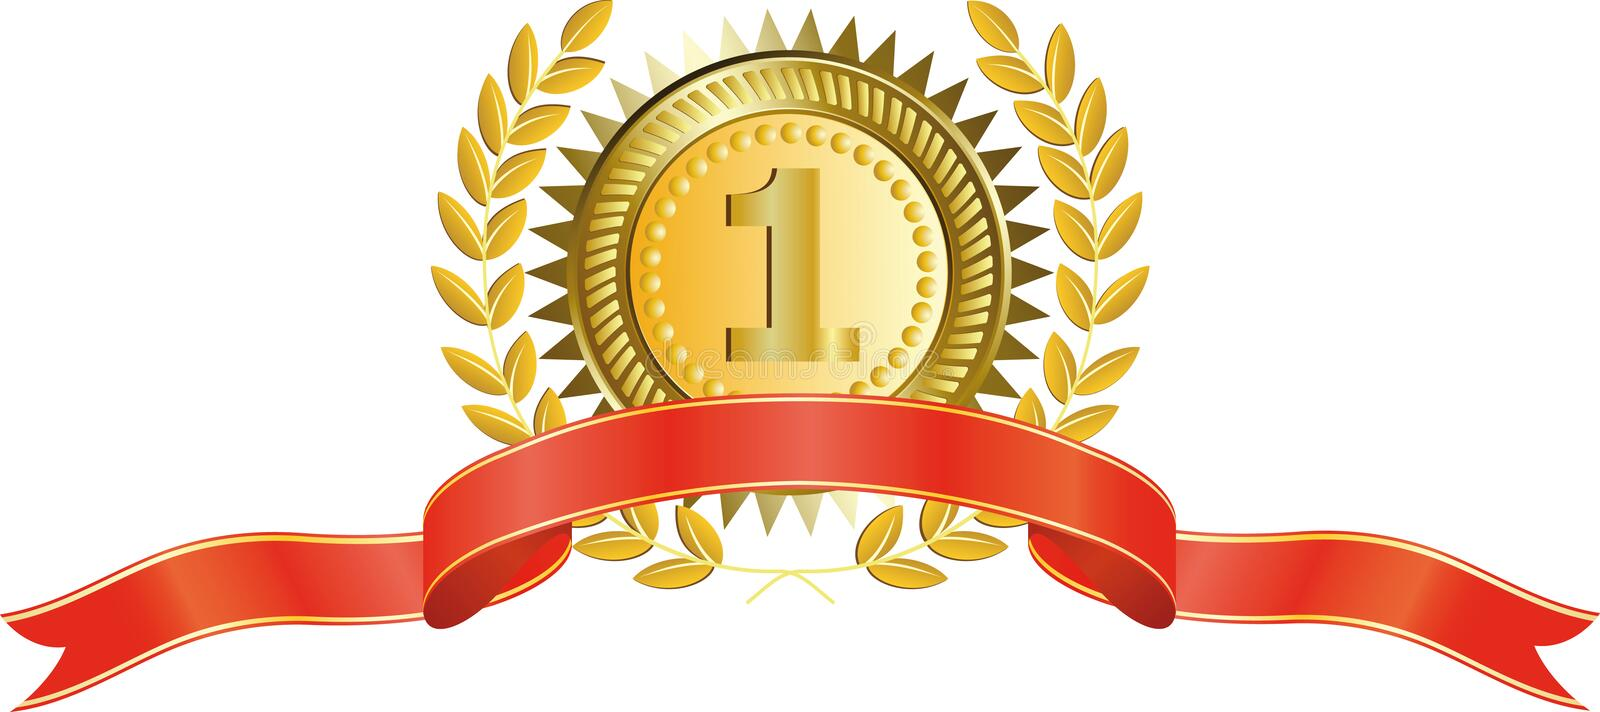 Gold medal and laurel wreath royalty free illustration